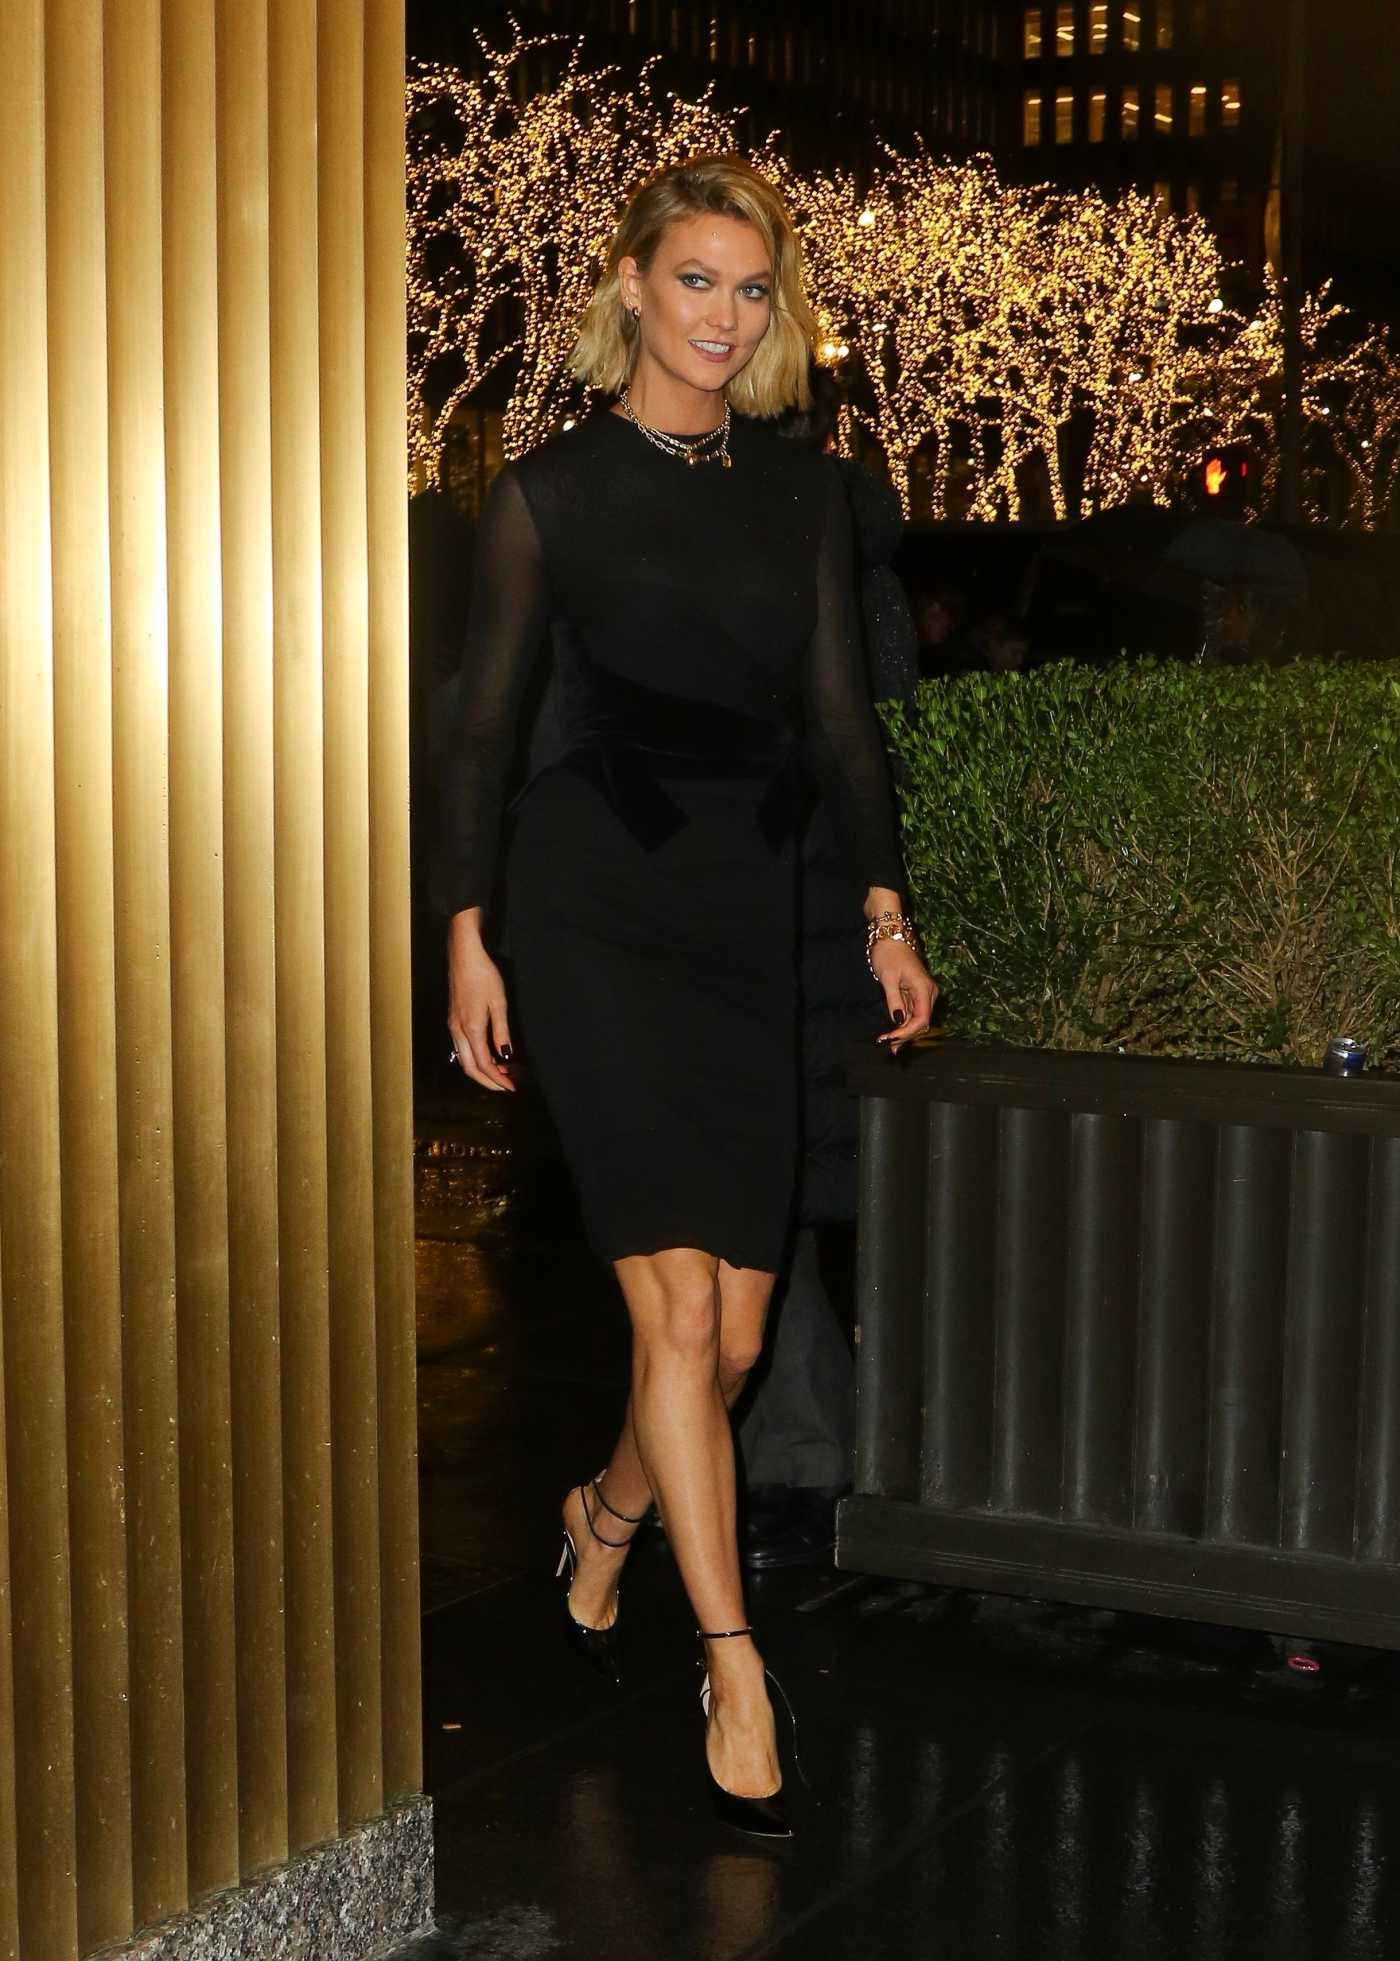 Karlie Kloss in a Black Dress Arrives at The Tonight Show Starring Jimmy Fallon at NBS Studios in New York 12/02/2019